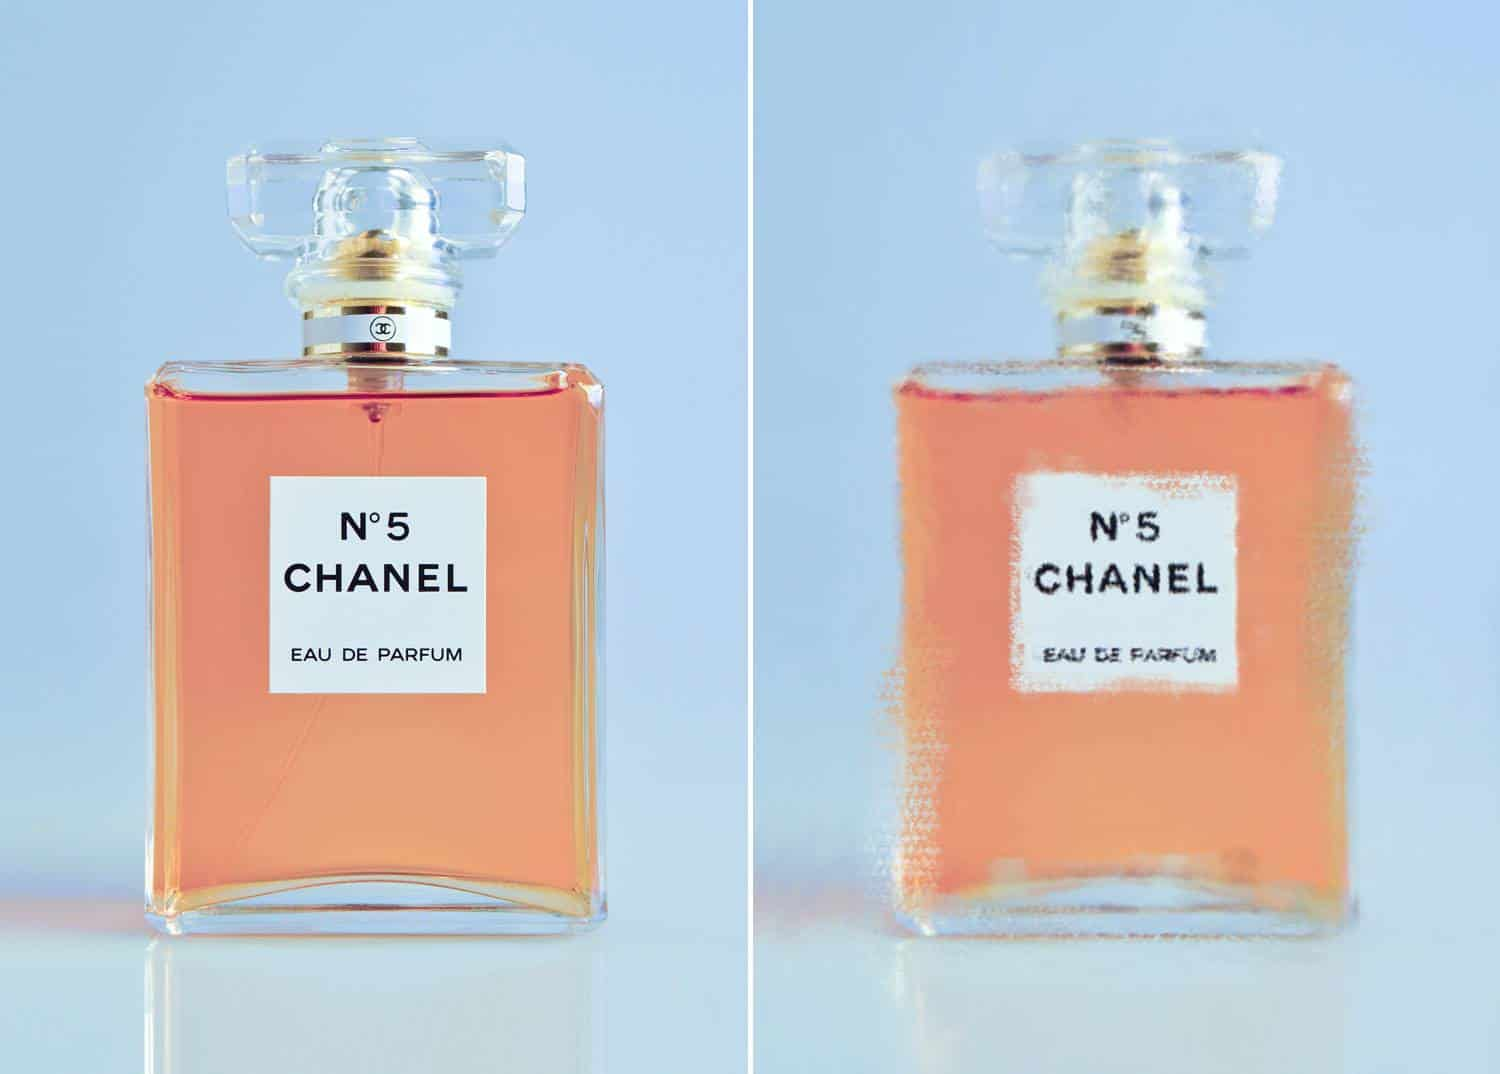 A photograph of a Chanel No. 5 bottle is depicted twice: once with no filter, and once with a Impressionist painting filter by Couture Design and Jessica Johnson